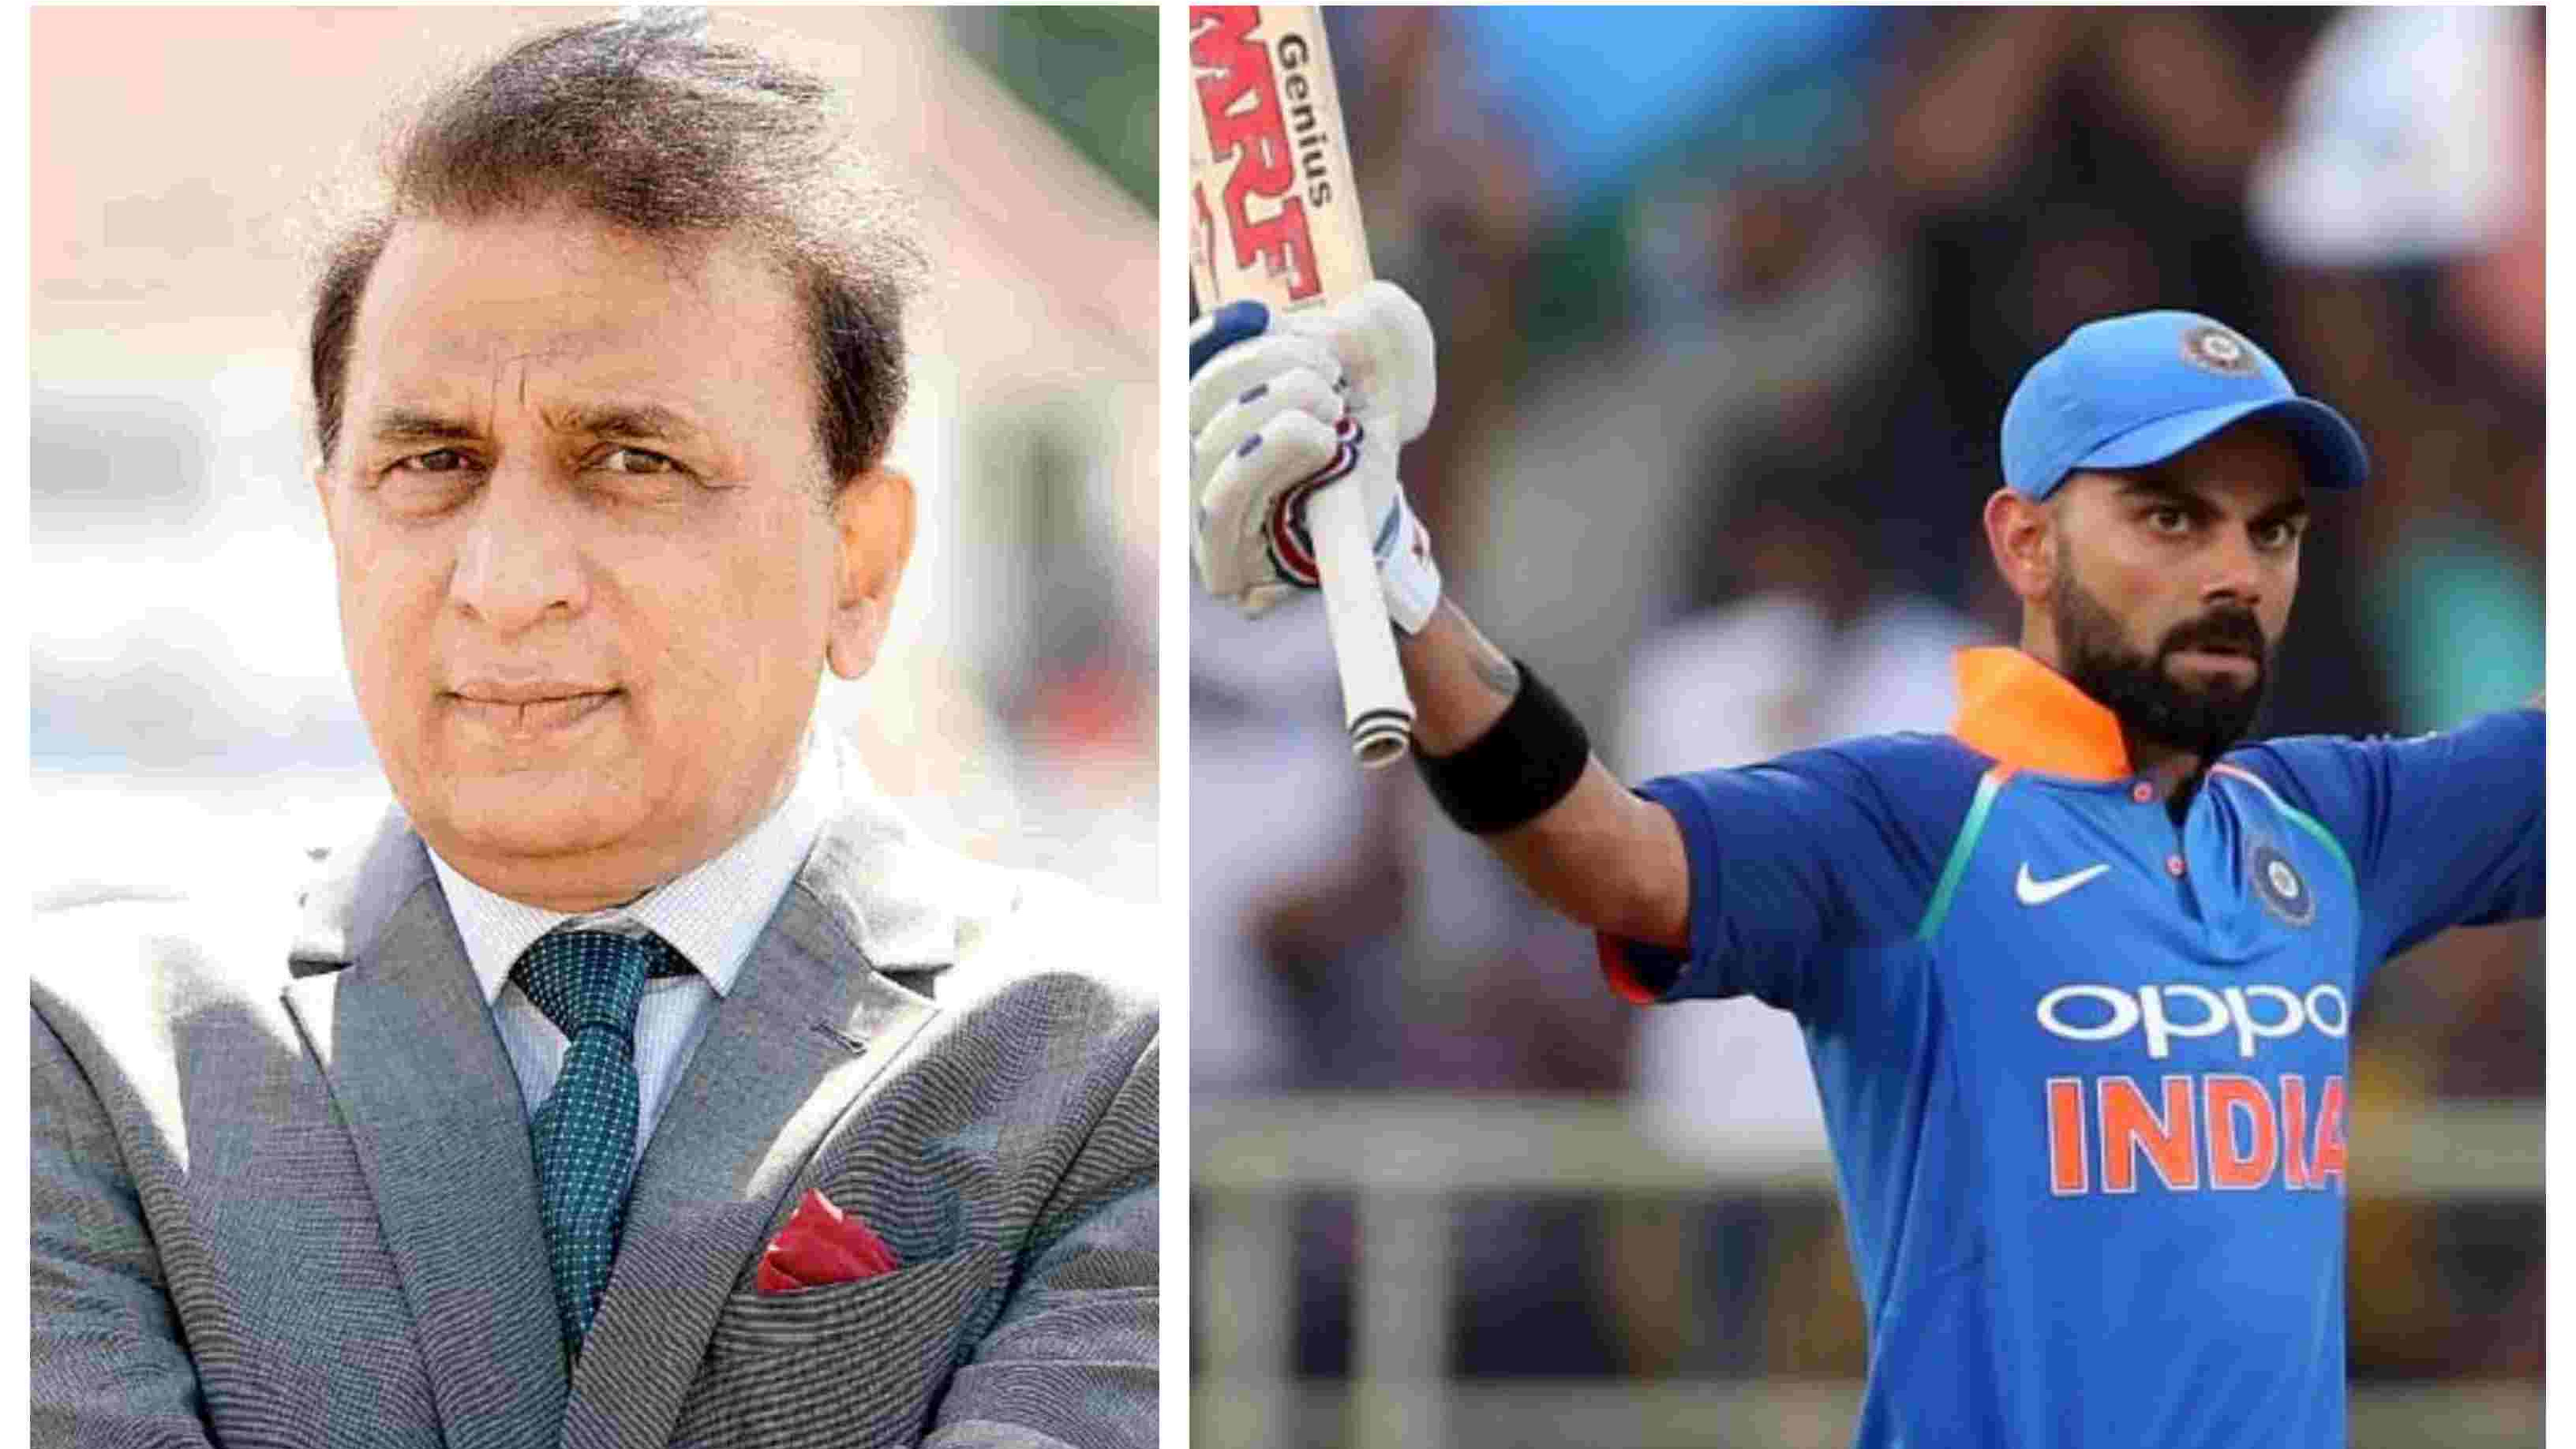 IND v WI 2018: Sunil Gavaskar tips Virat Kohli to break all the batting records